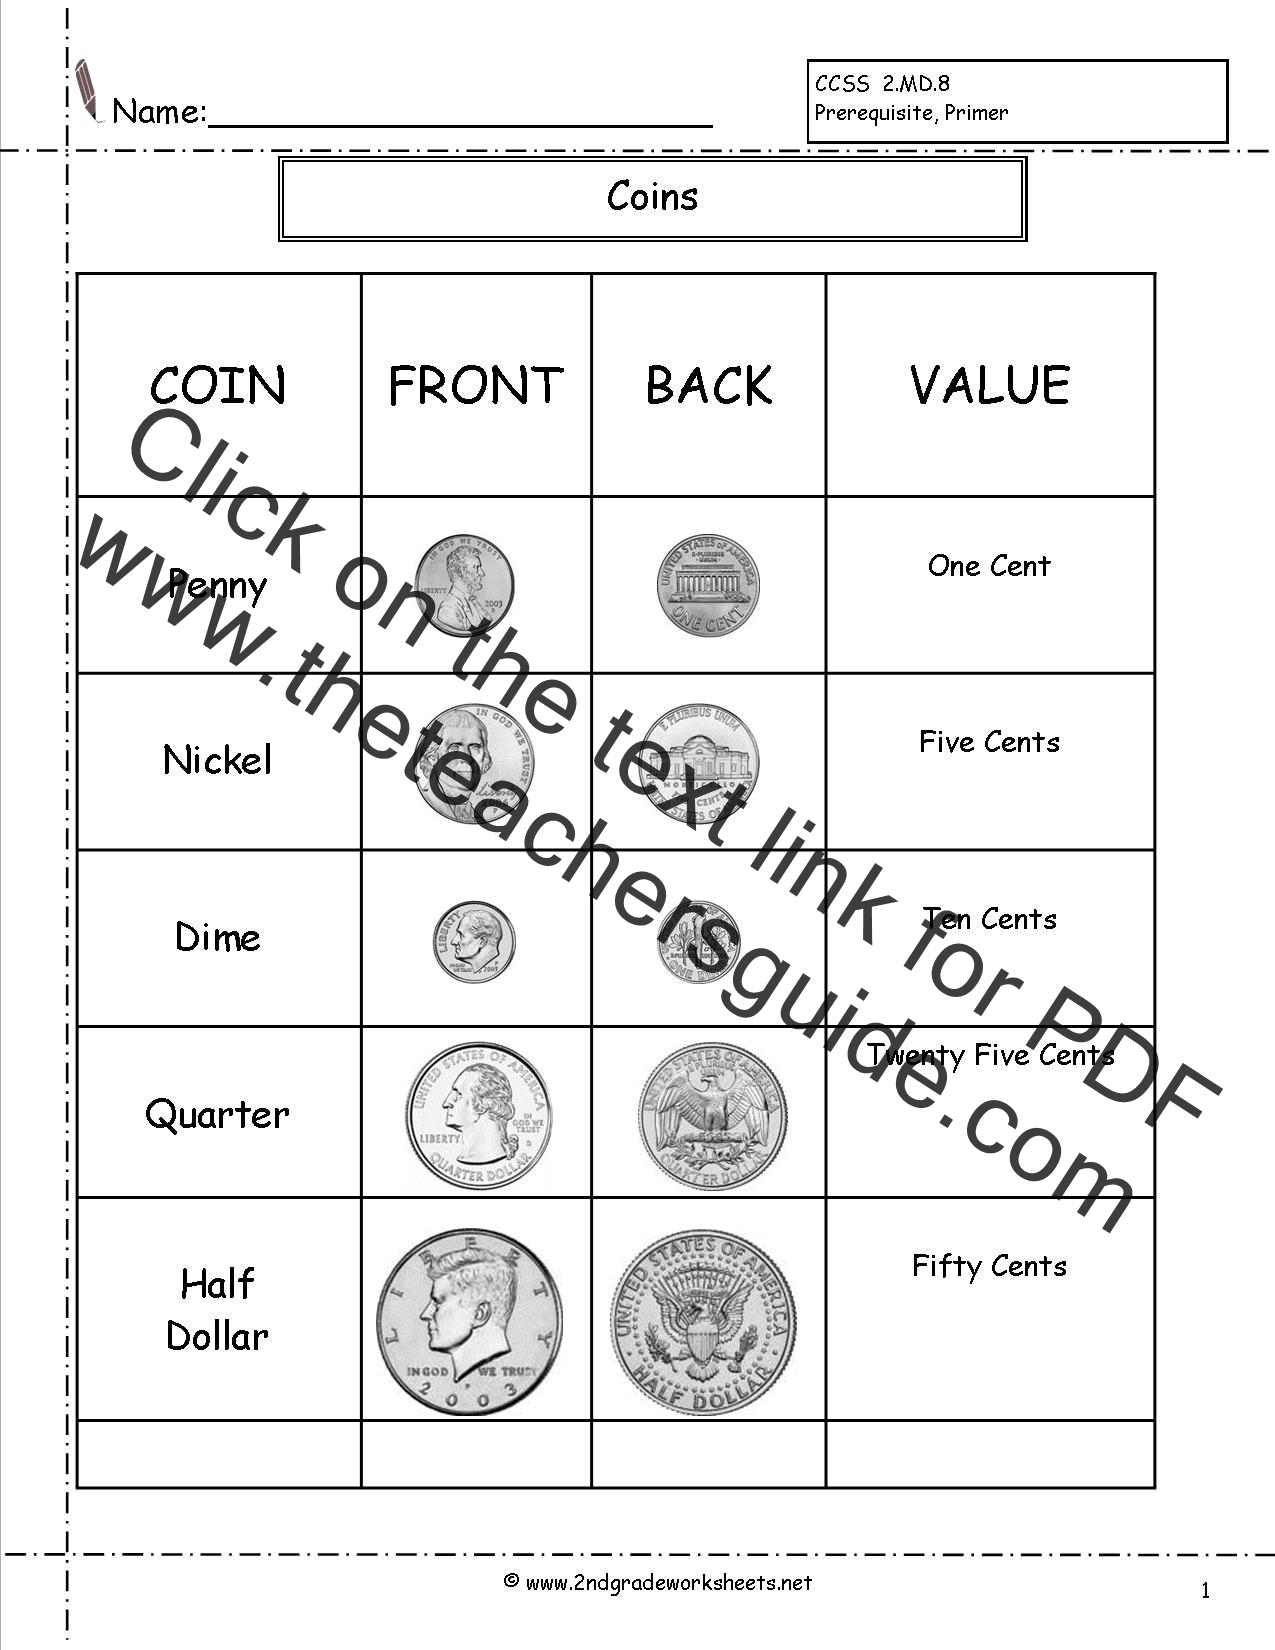 Printables Counting Coins Worksheets 2nd Grade ccss 2 md 8 worksheets counting coins money worksheet coin identification and values